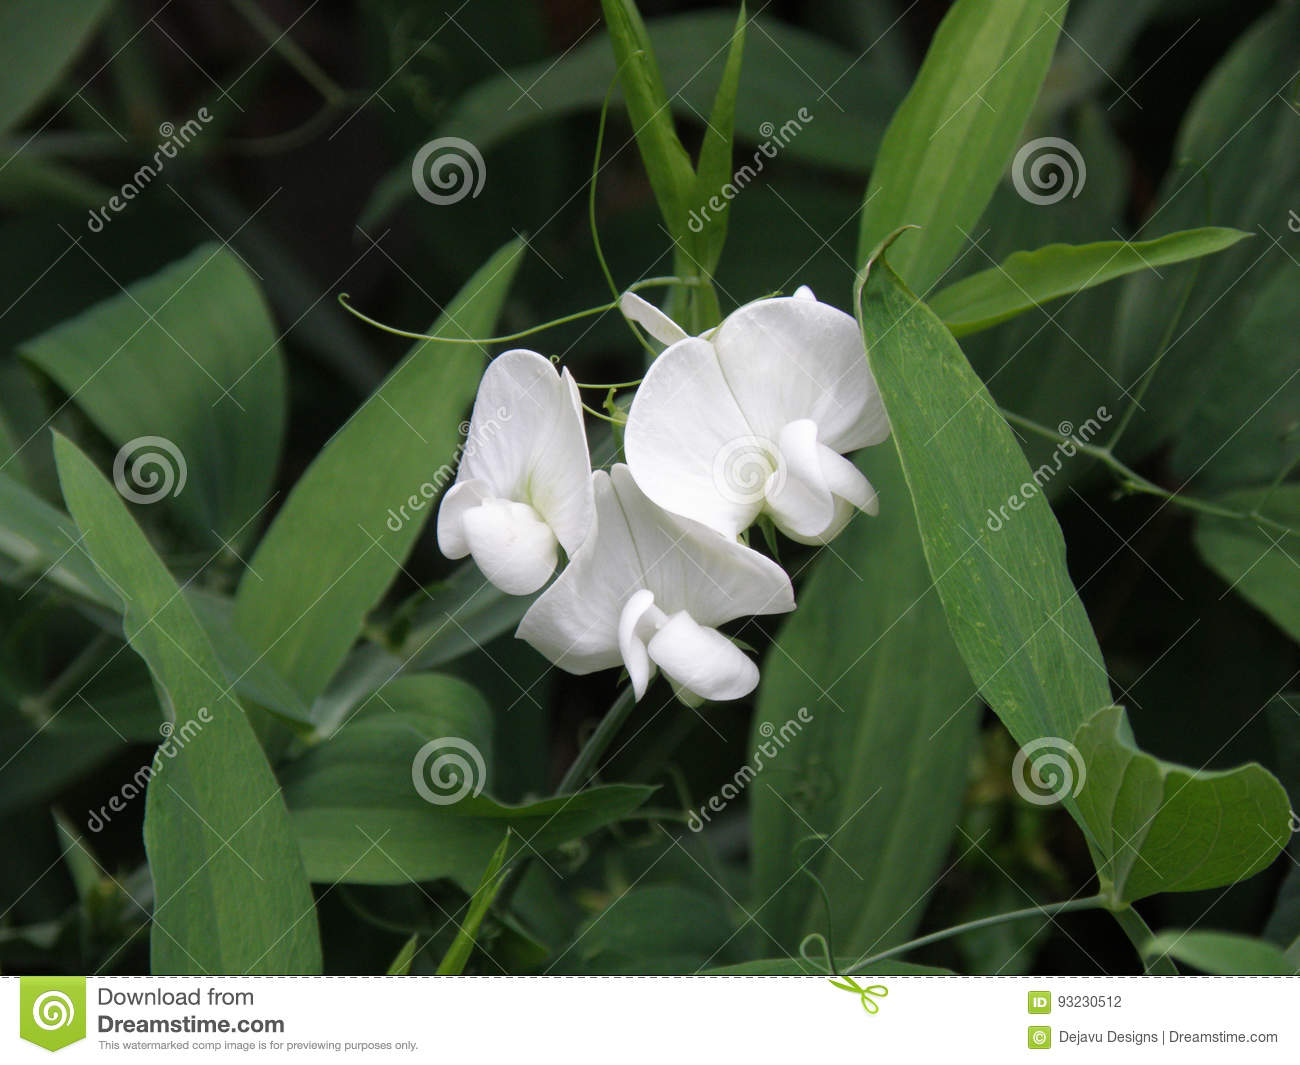 Pretty White Sweet Pea Flowers In A Garden Stock Photo Image Of